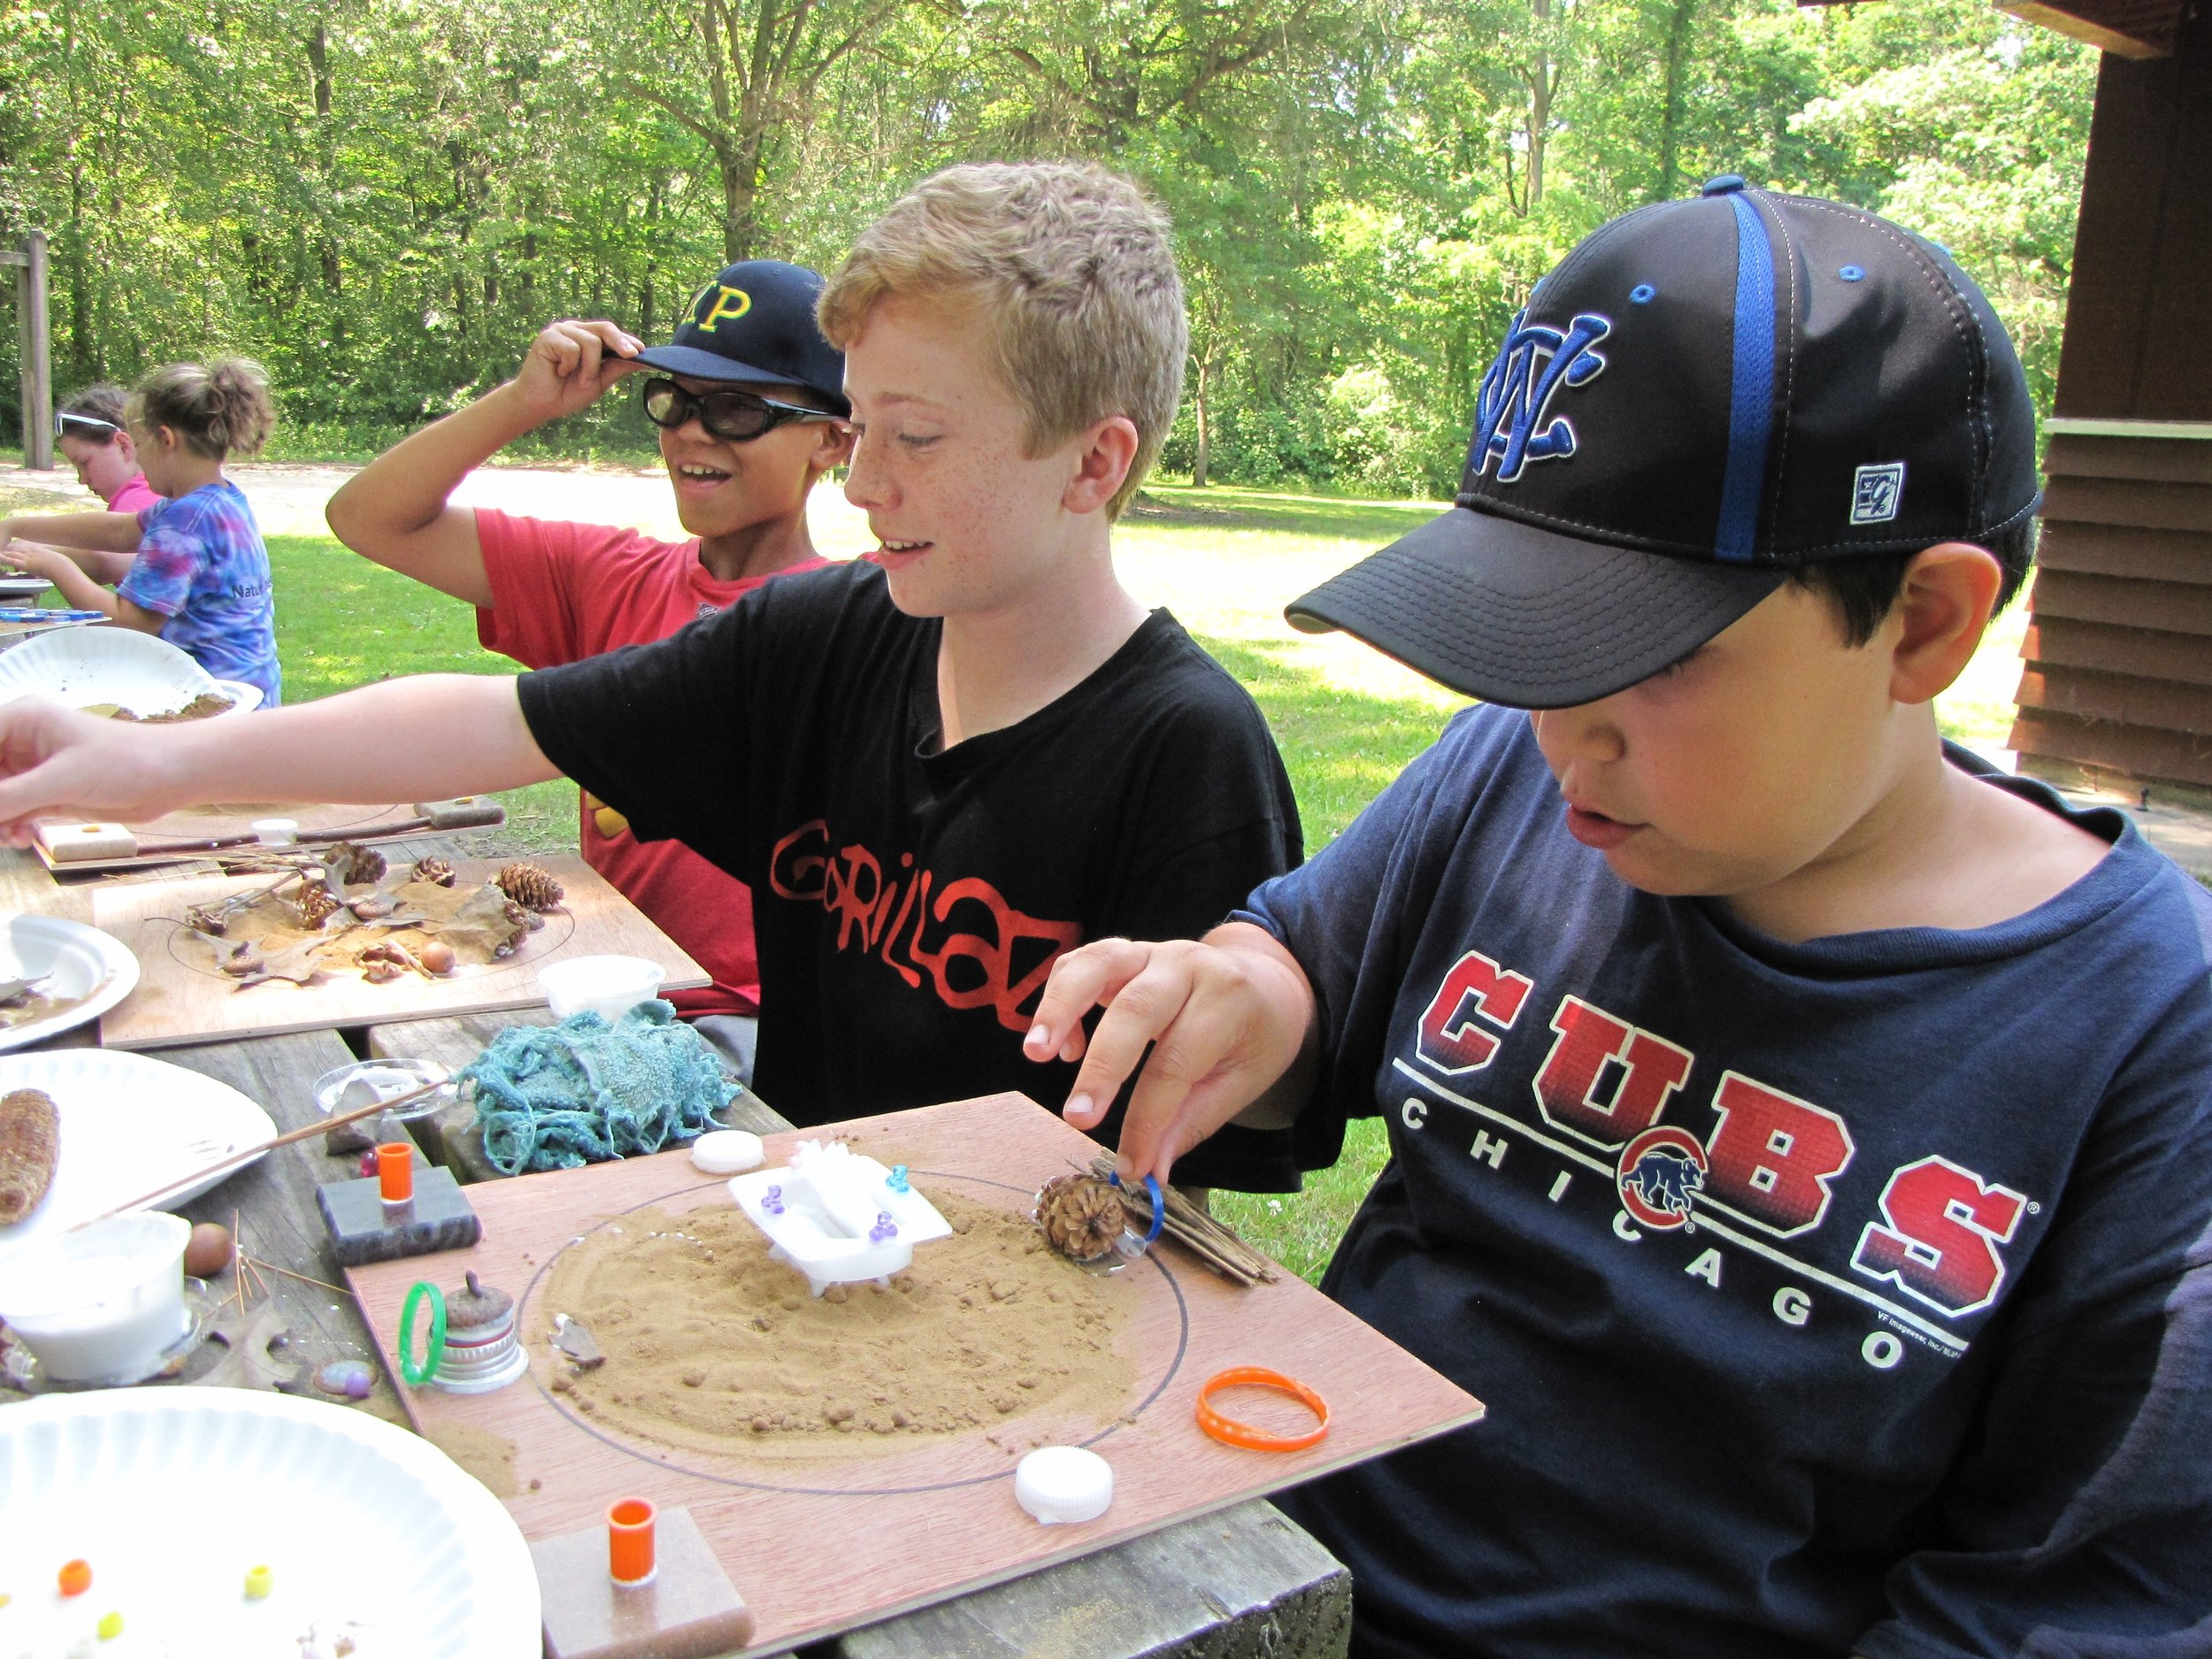 """Campers share inspiration and suggestions while working """"en plein air""""."""